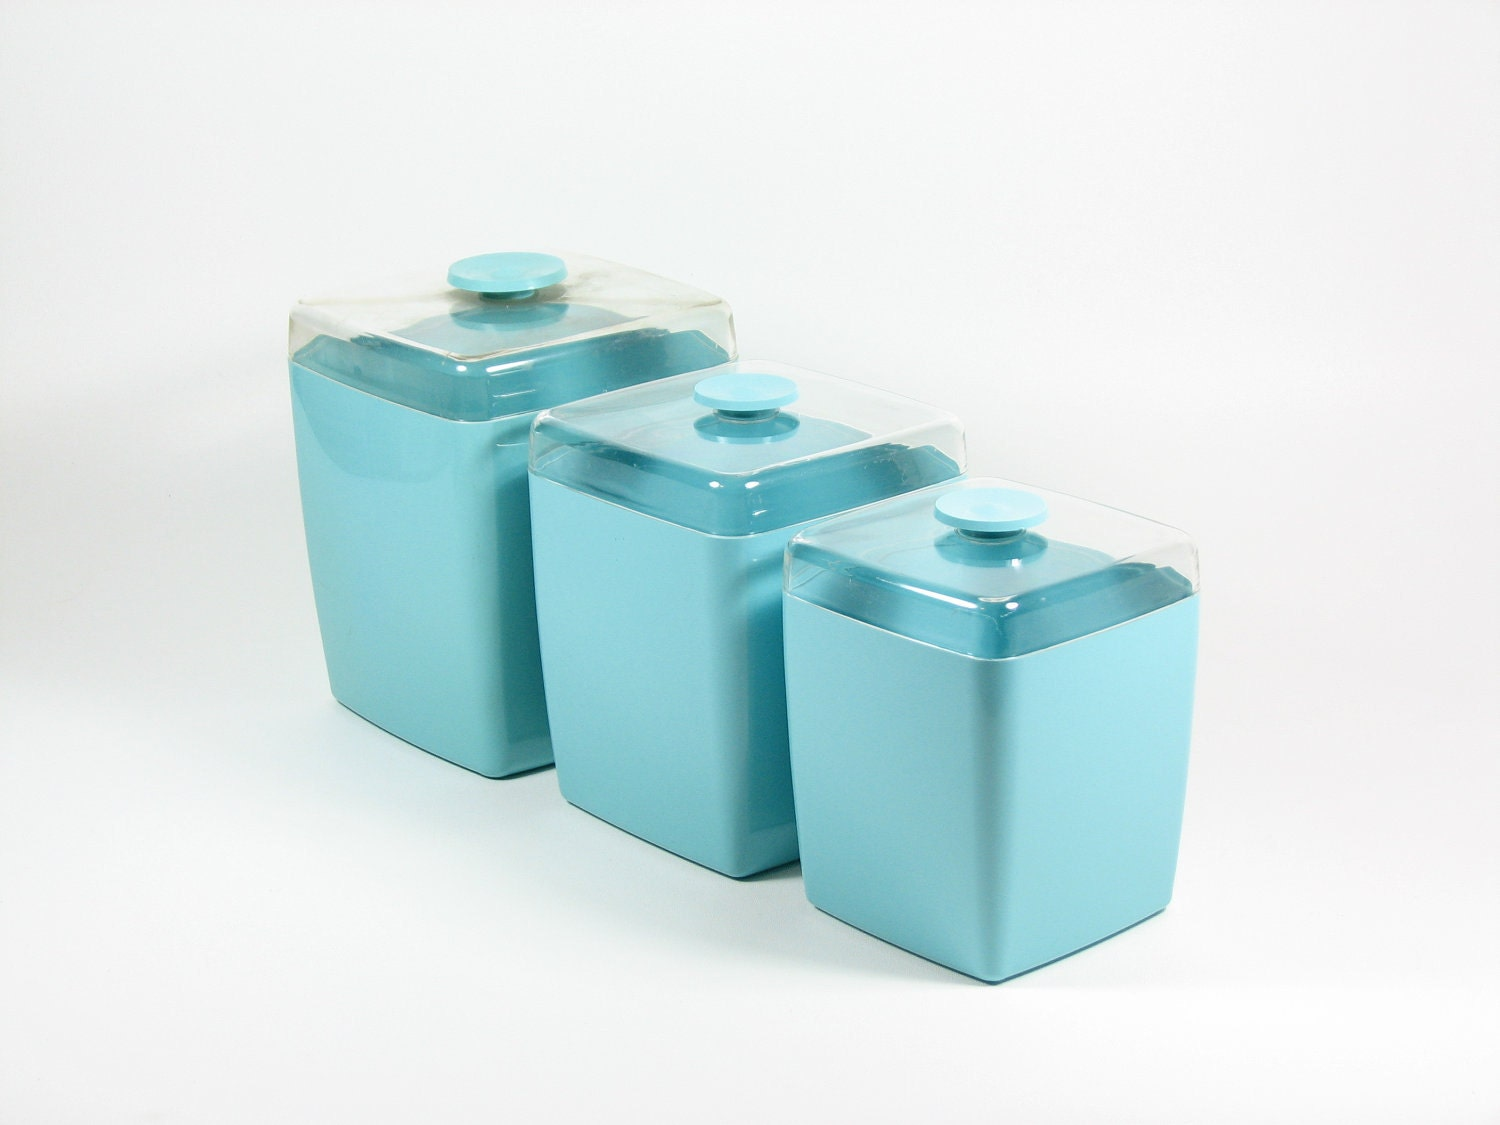 vintage canisters turquoise teal plastic set of 3